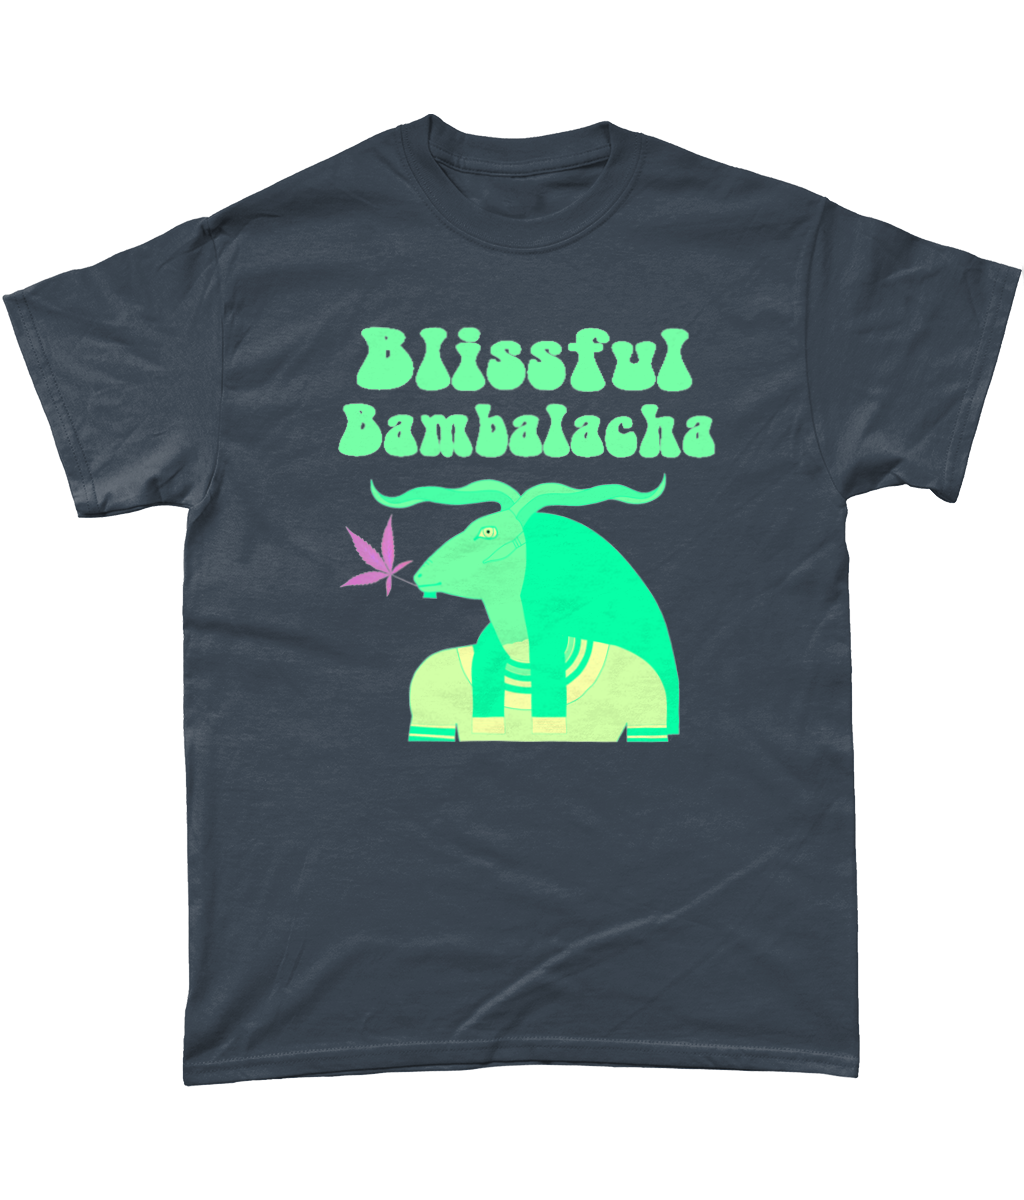 Blissful Bambalacha